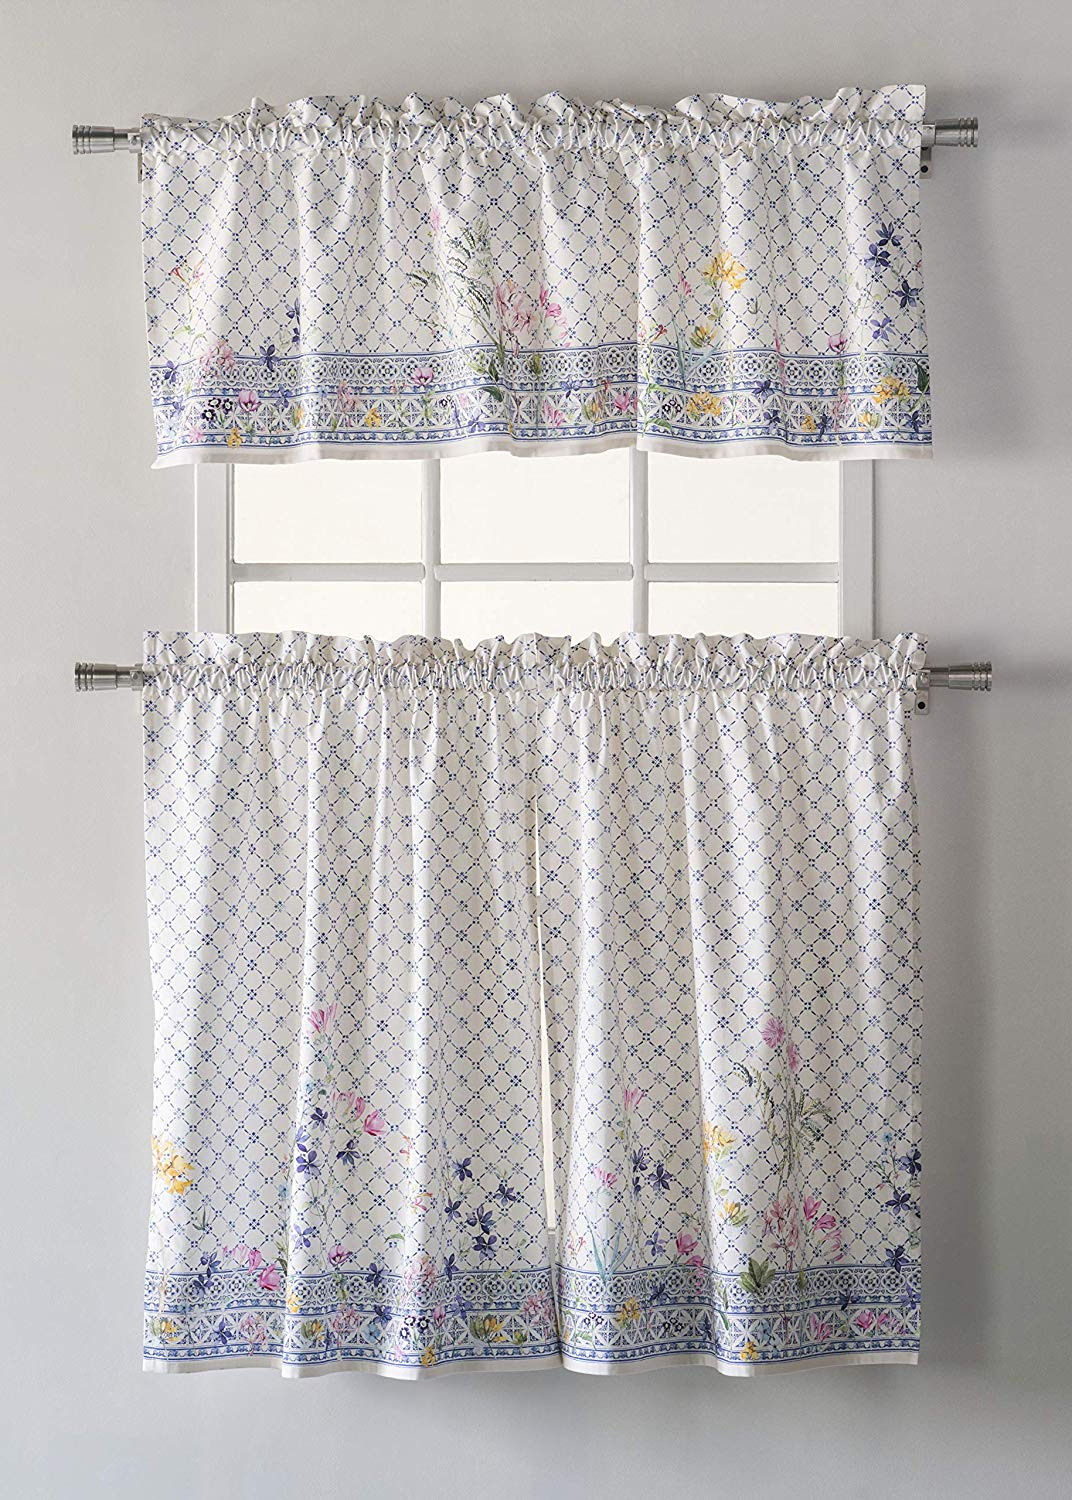 [%Maison D' Hermine Faïence 100% Cotton Kitchen Curtain Sets – 2 Tiers (28  Inch36 Inch) And 1 Valance (56 Inch18 Inch) Within Best And Newest Classic Kitchen Curtain Sets|Classic Kitchen Curtain Sets With Current Maison D' Hermine Faïence 100% Cotton Kitchen Curtain Sets – 2 Tiers (28  Inch36 Inch) And 1 Valance (56 Inch18 Inch)|Most Recently Released Classic Kitchen Curtain Sets Within Maison D' Hermine Faïence 100% Cotton Kitchen Curtain Sets – 2 Tiers (28  Inch36 Inch) And 1 Valance (56 Inch18 Inch)|Current Maison D' Hermine Faïence 100% Cotton Kitchen Curtain Sets – 2 Tiers (28  Inch36 Inch) And 1 Valance (56 Inch18 Inch) Intended For Classic Kitchen Curtain Sets%] (View 1 of 20)